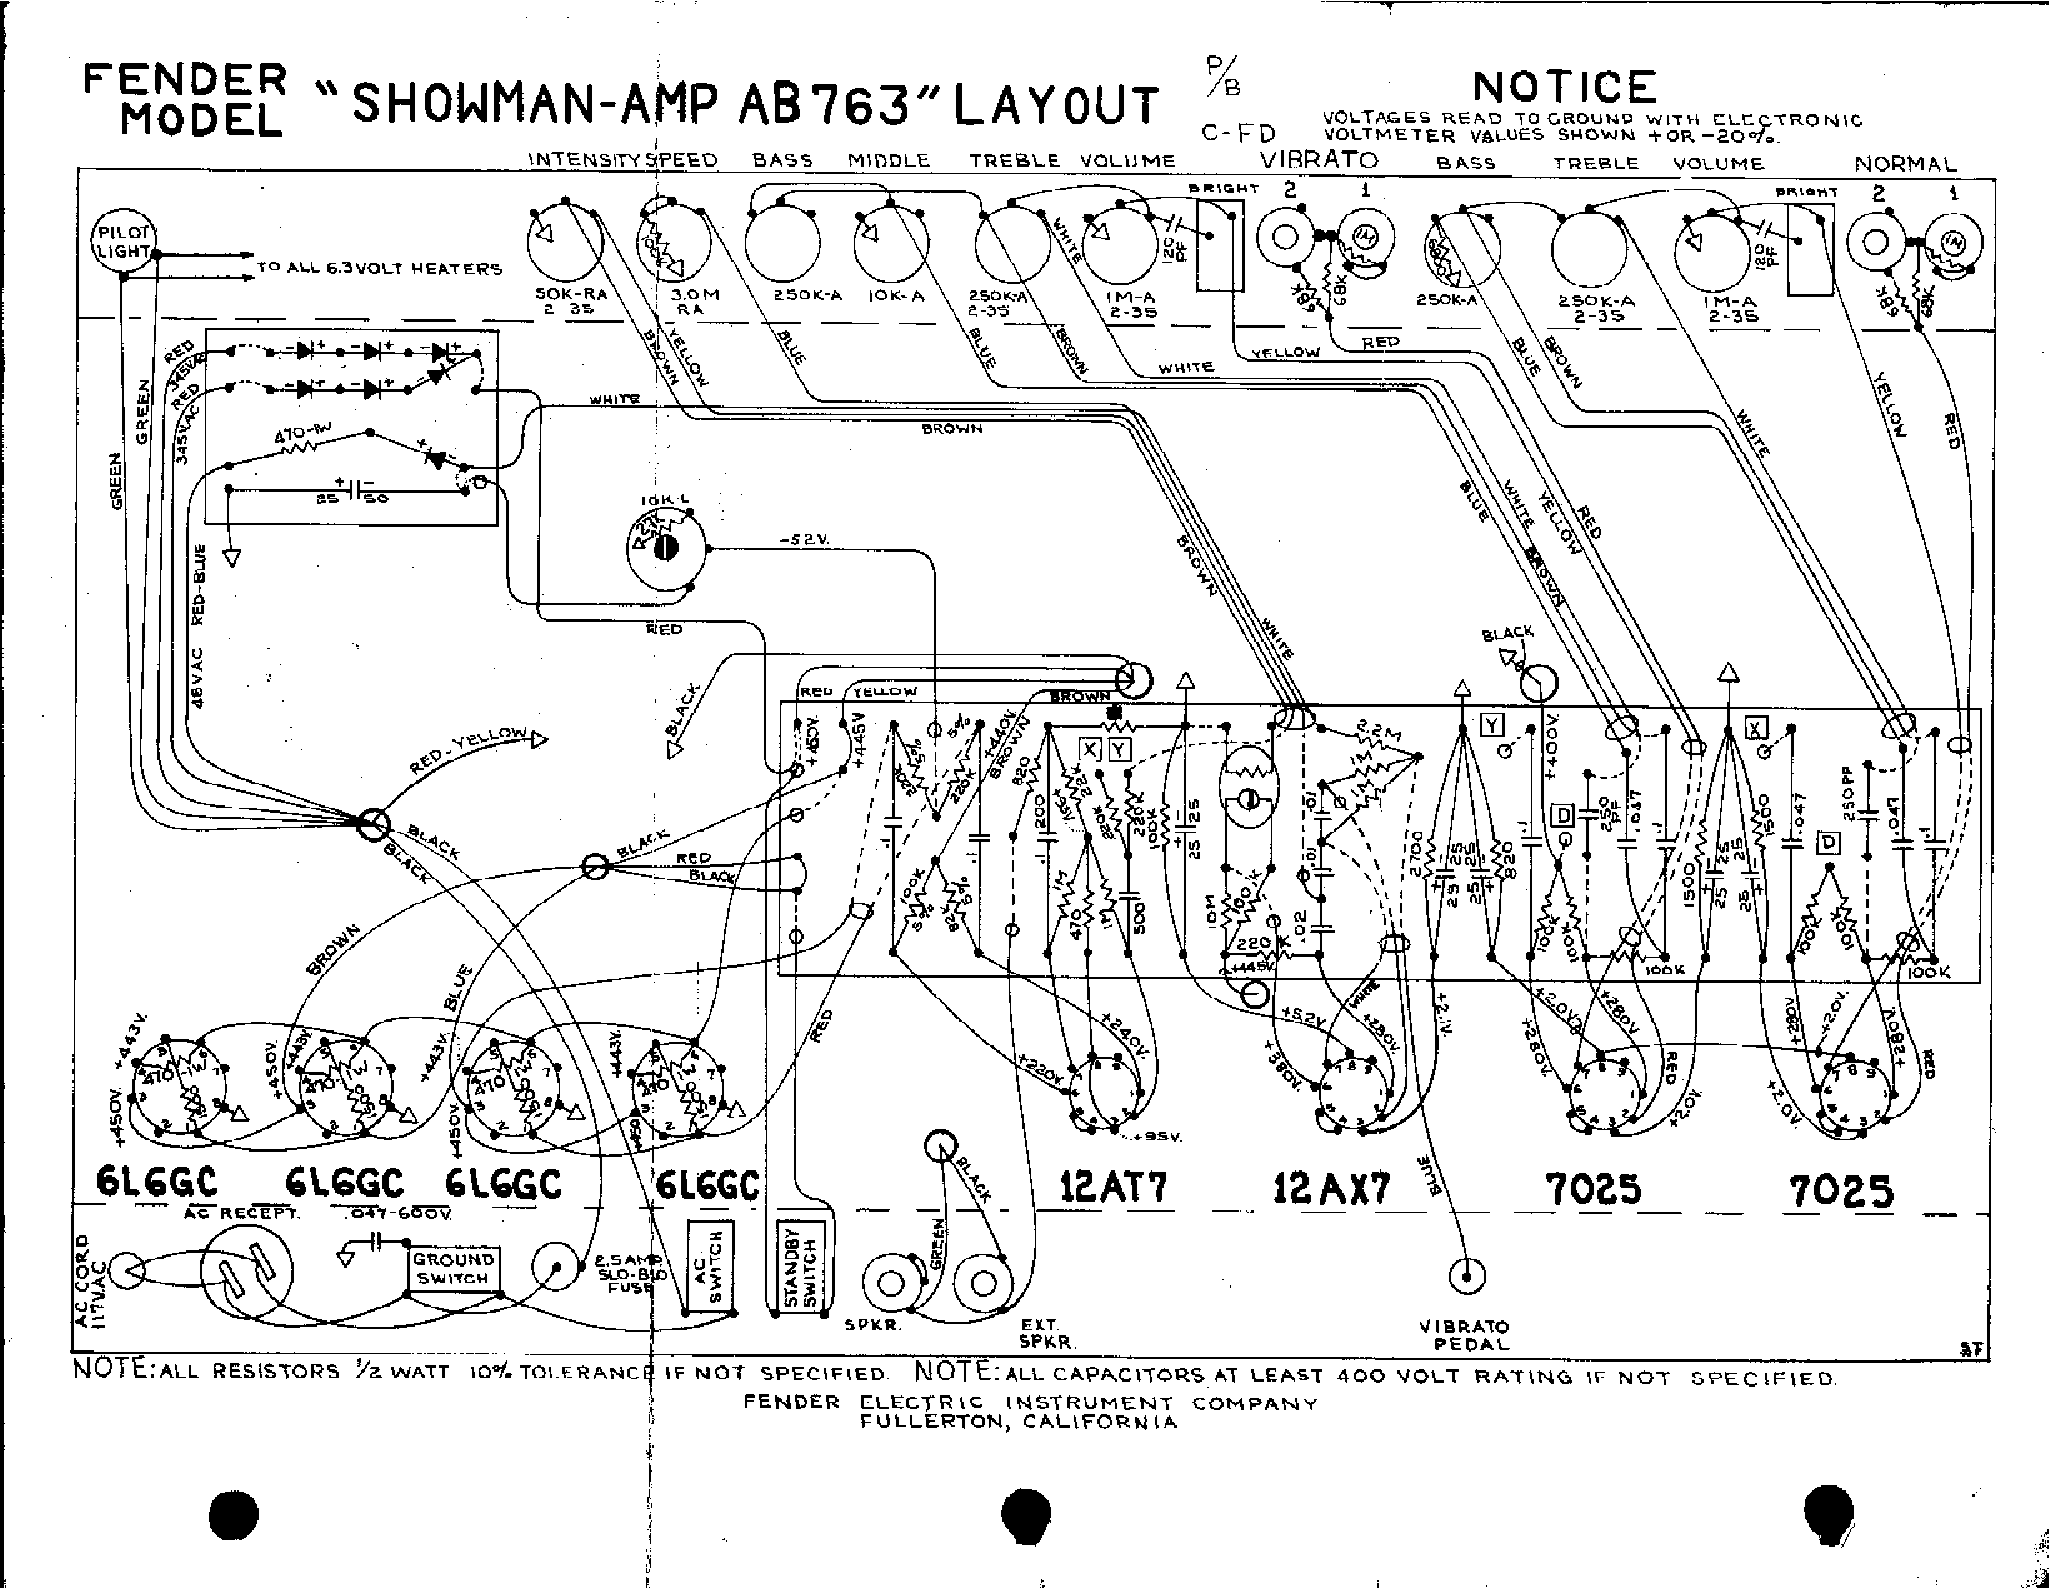 Fender Showman Ab763 Layout Service Manual Download